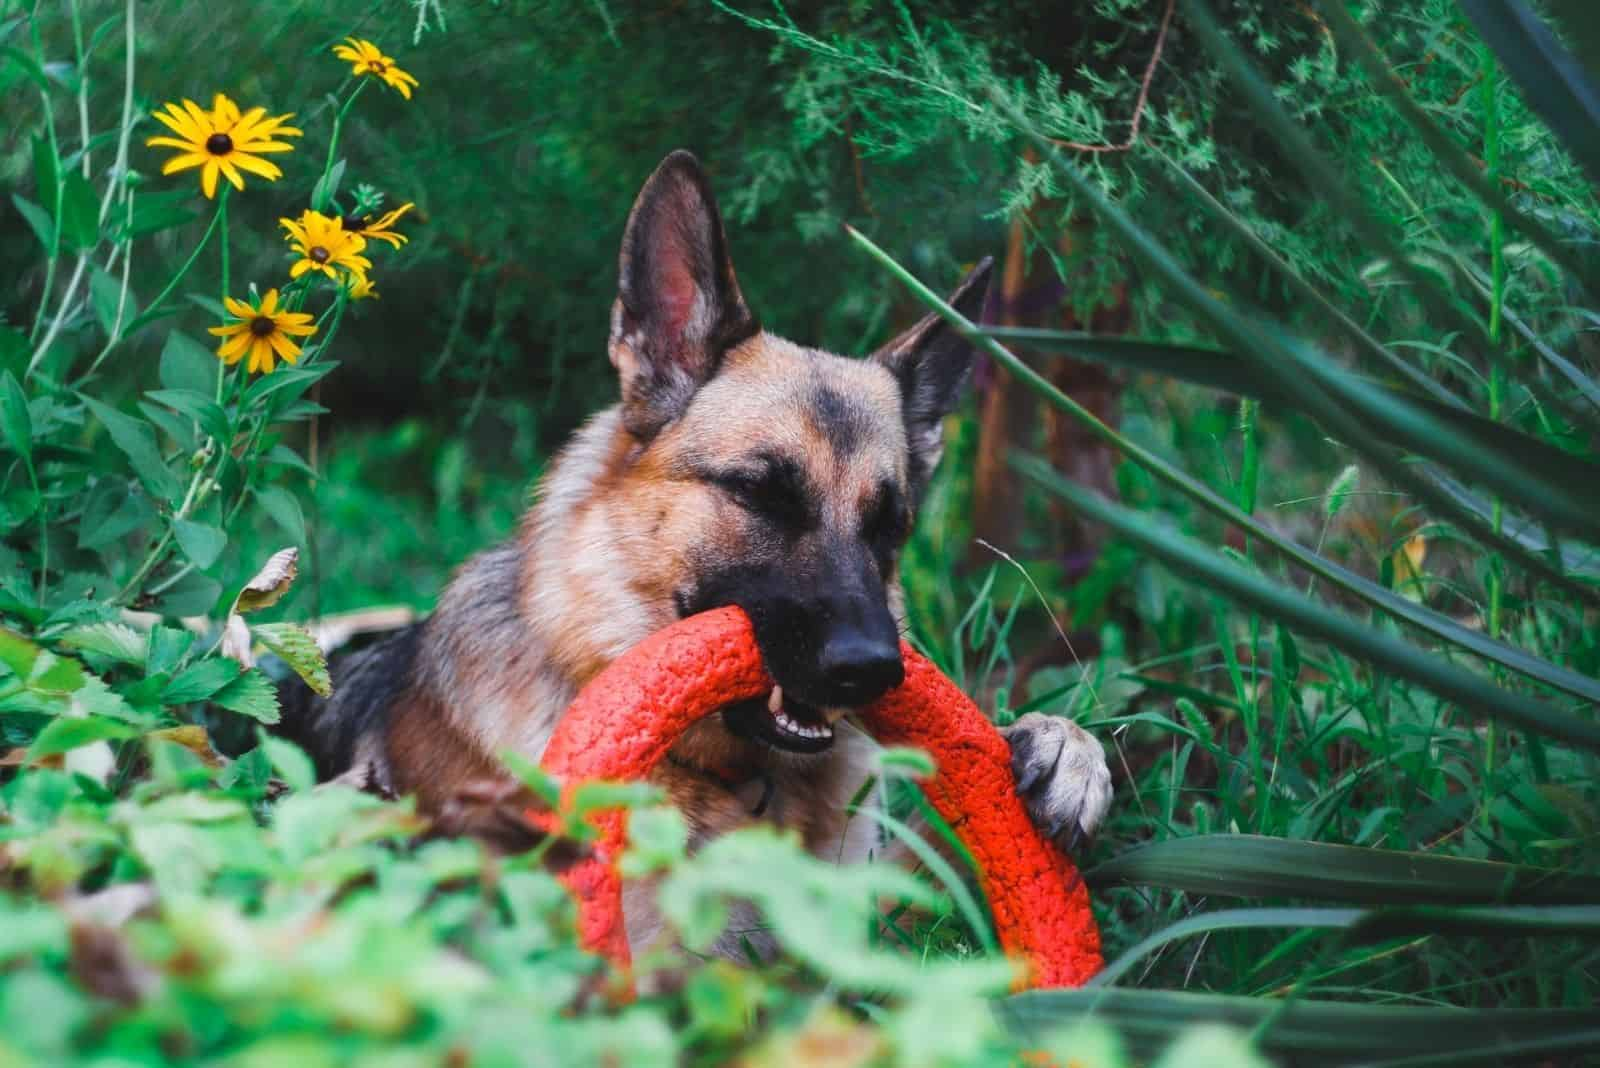 german shepherds plays with a toy